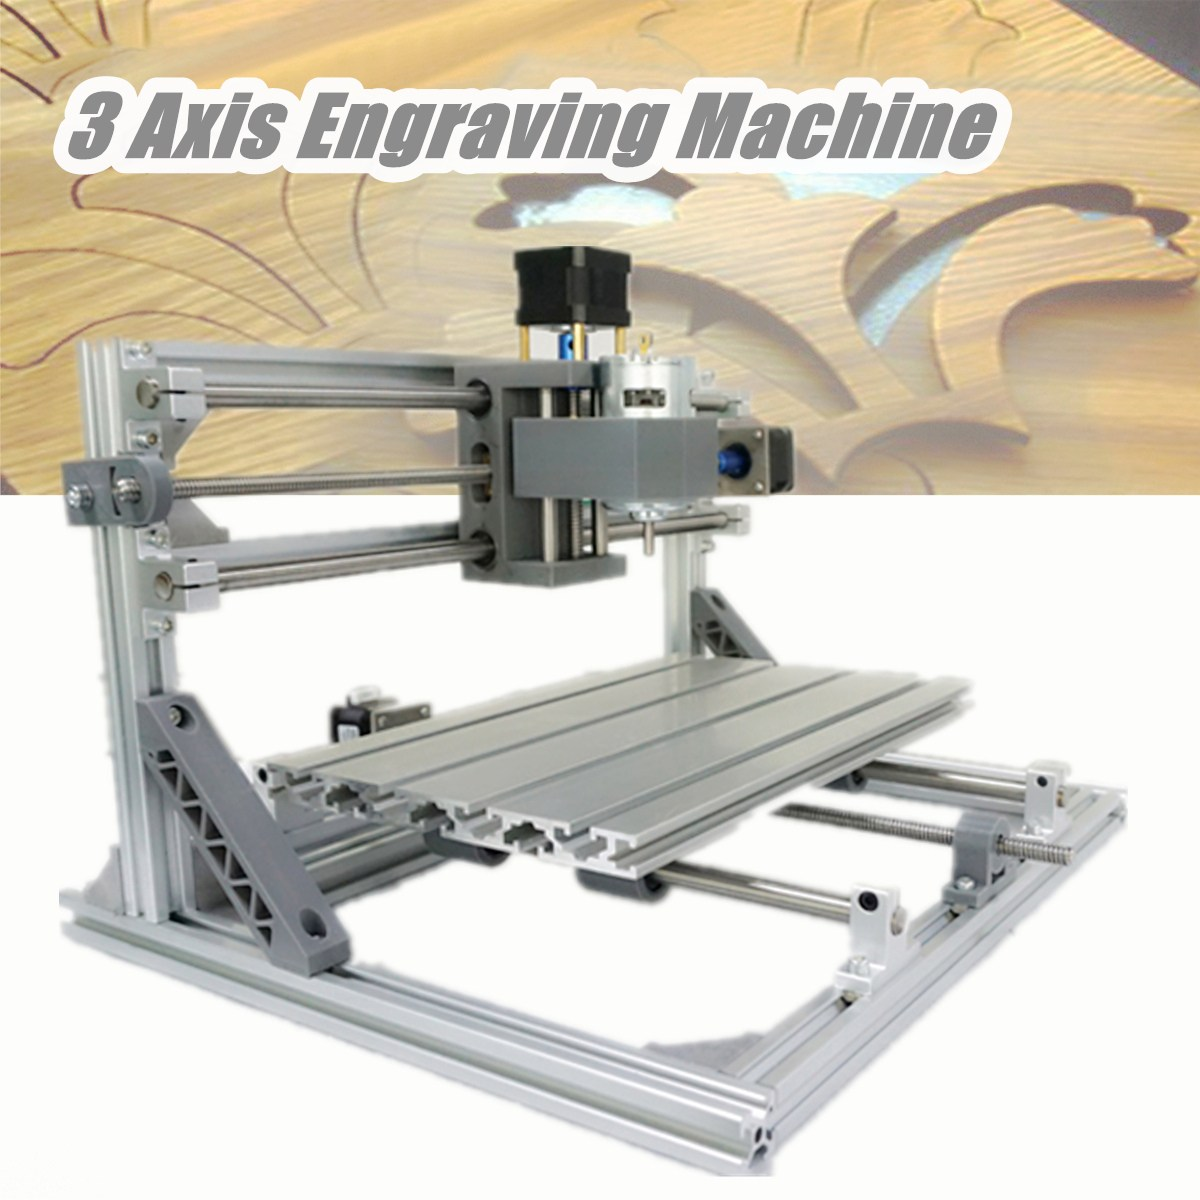 DIY Mini CNC Router Laser Machine 3 Axis 3018 ER11 GRBL Control Pcb Pvc Milling Wood Router Wood Router Laser Engraving